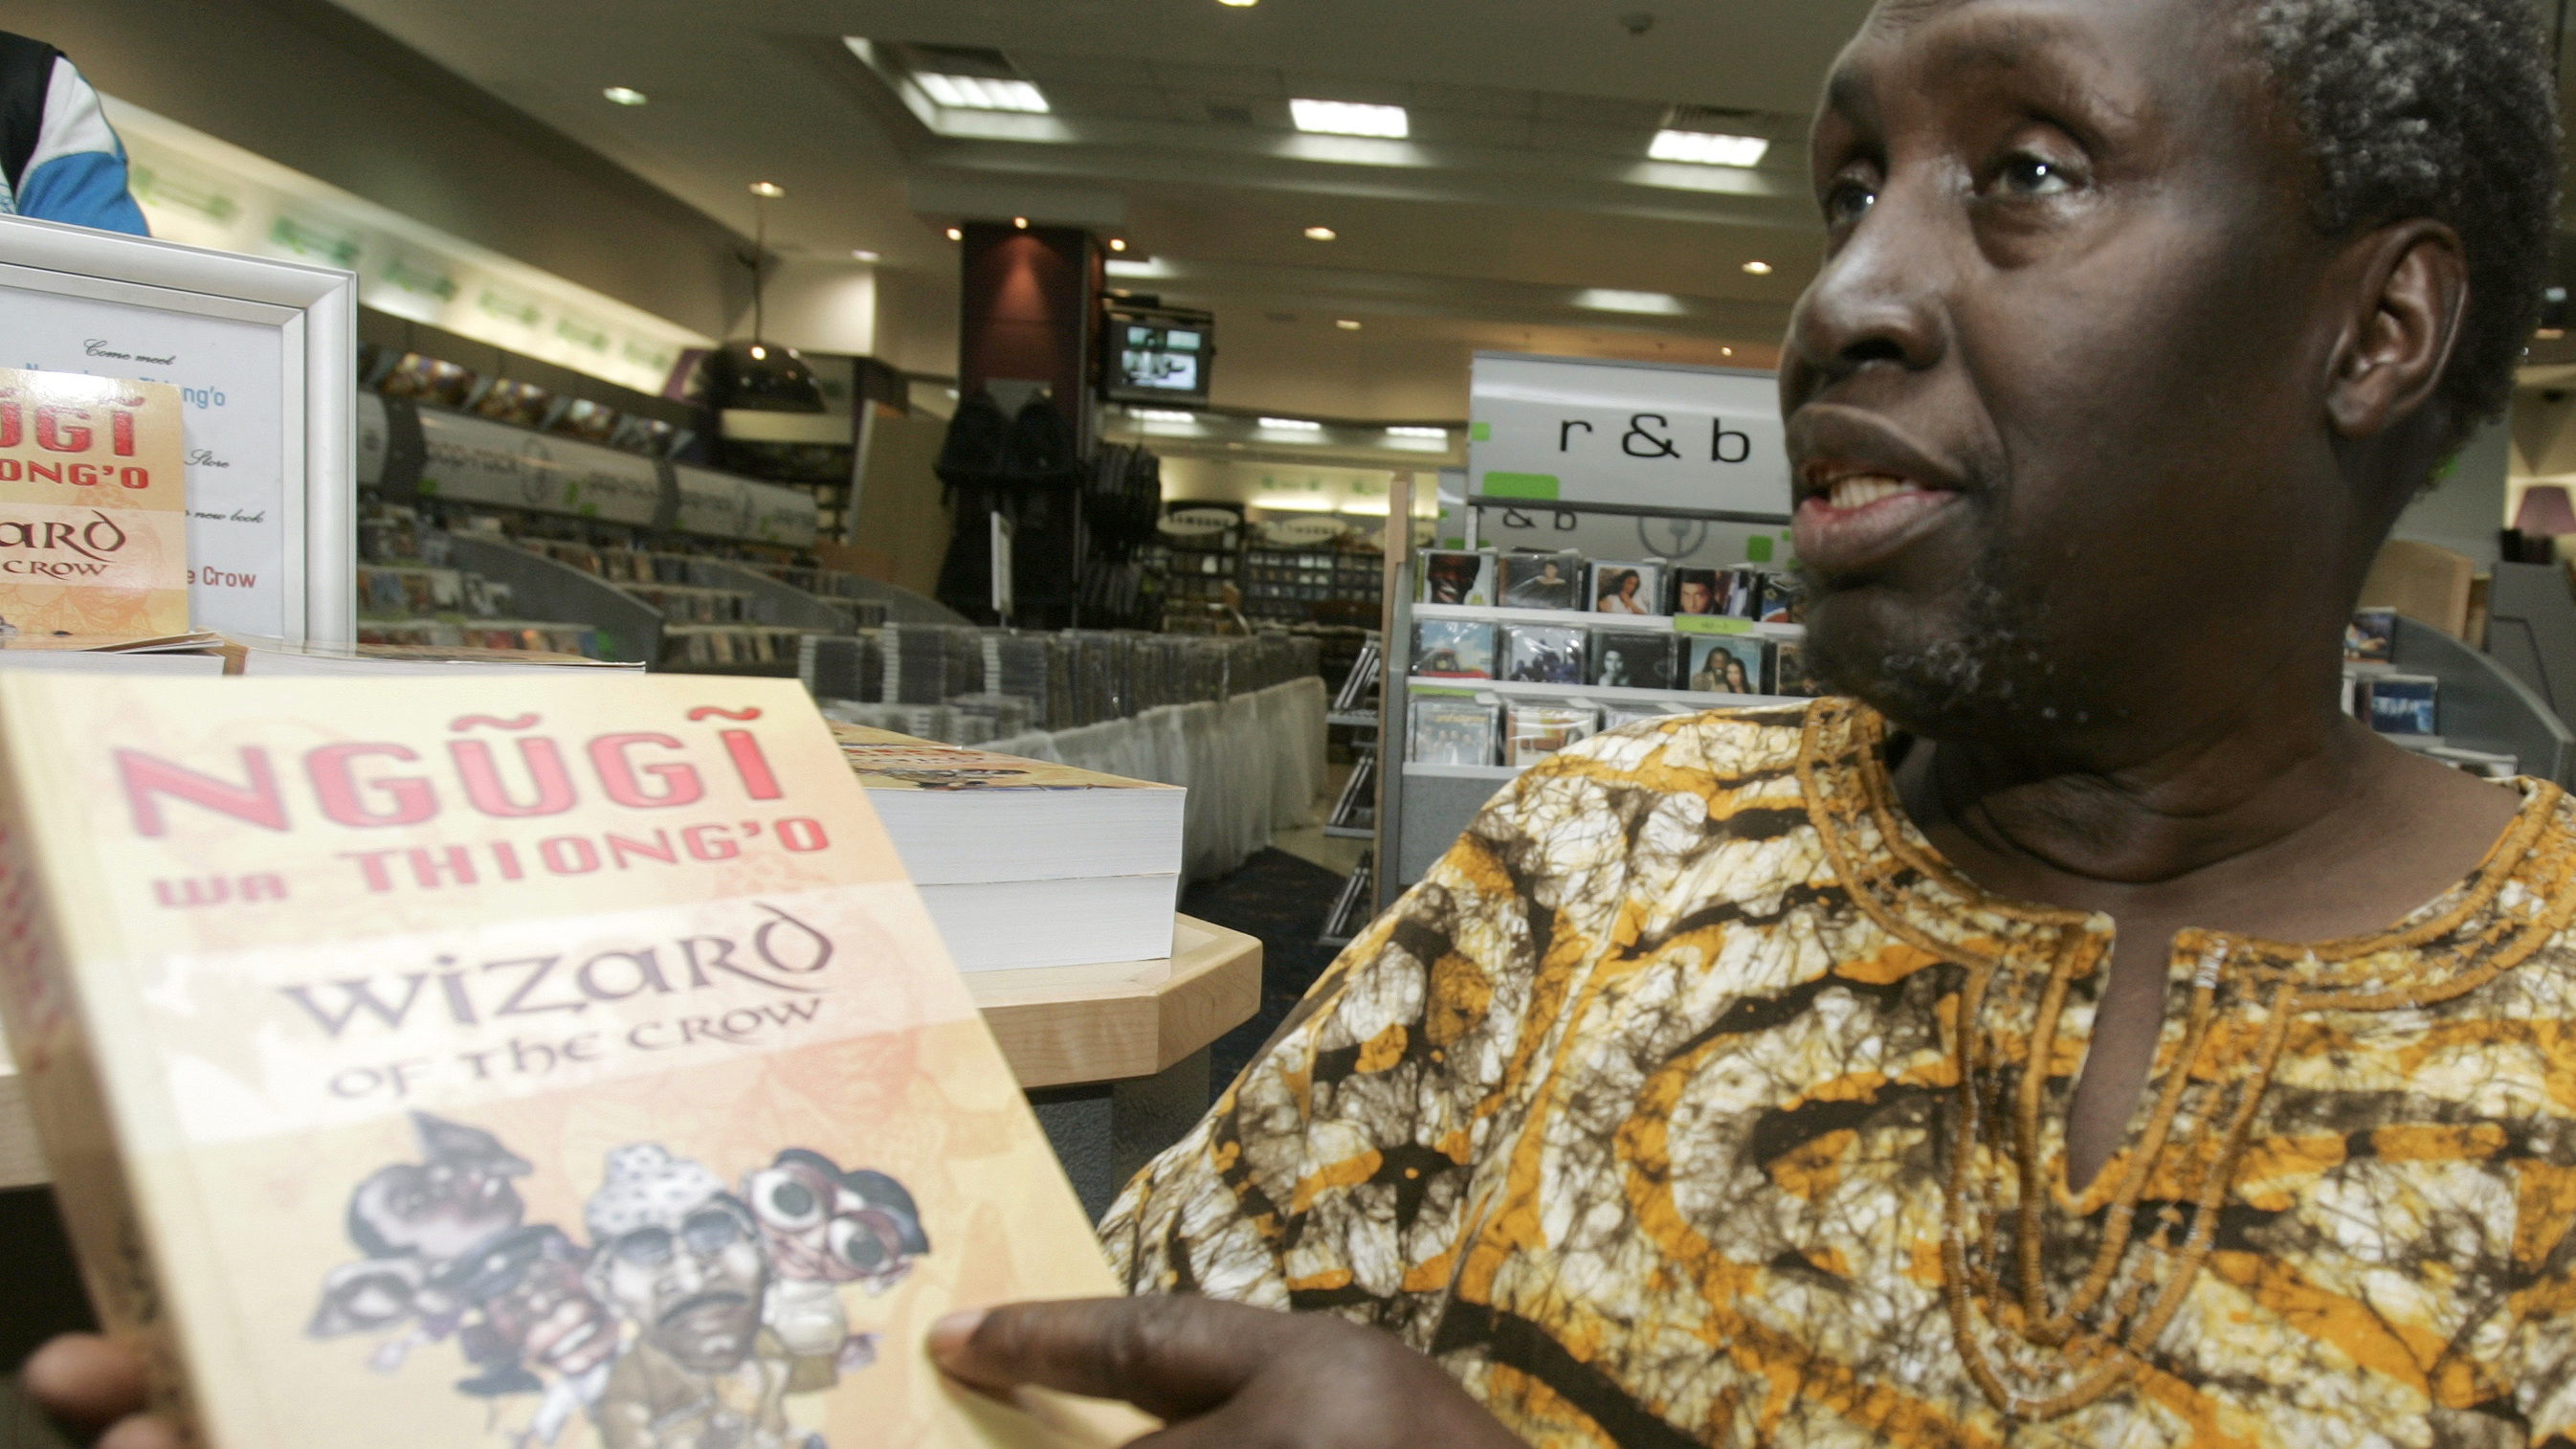 "Kenyan author Ngugi Wa Thiong'o shows his newly launched book ""Wizard of the Crow"" during an interview with Reuters at a bookshop in downtown Nairobi January 16, 2007. The book, which took Wa Thiong'o more than six years to write, was released on Monday, about 20 years after his novel ""Matigari"". REUTERS/Antony Njuguna (KENYA) - RTR1L921"